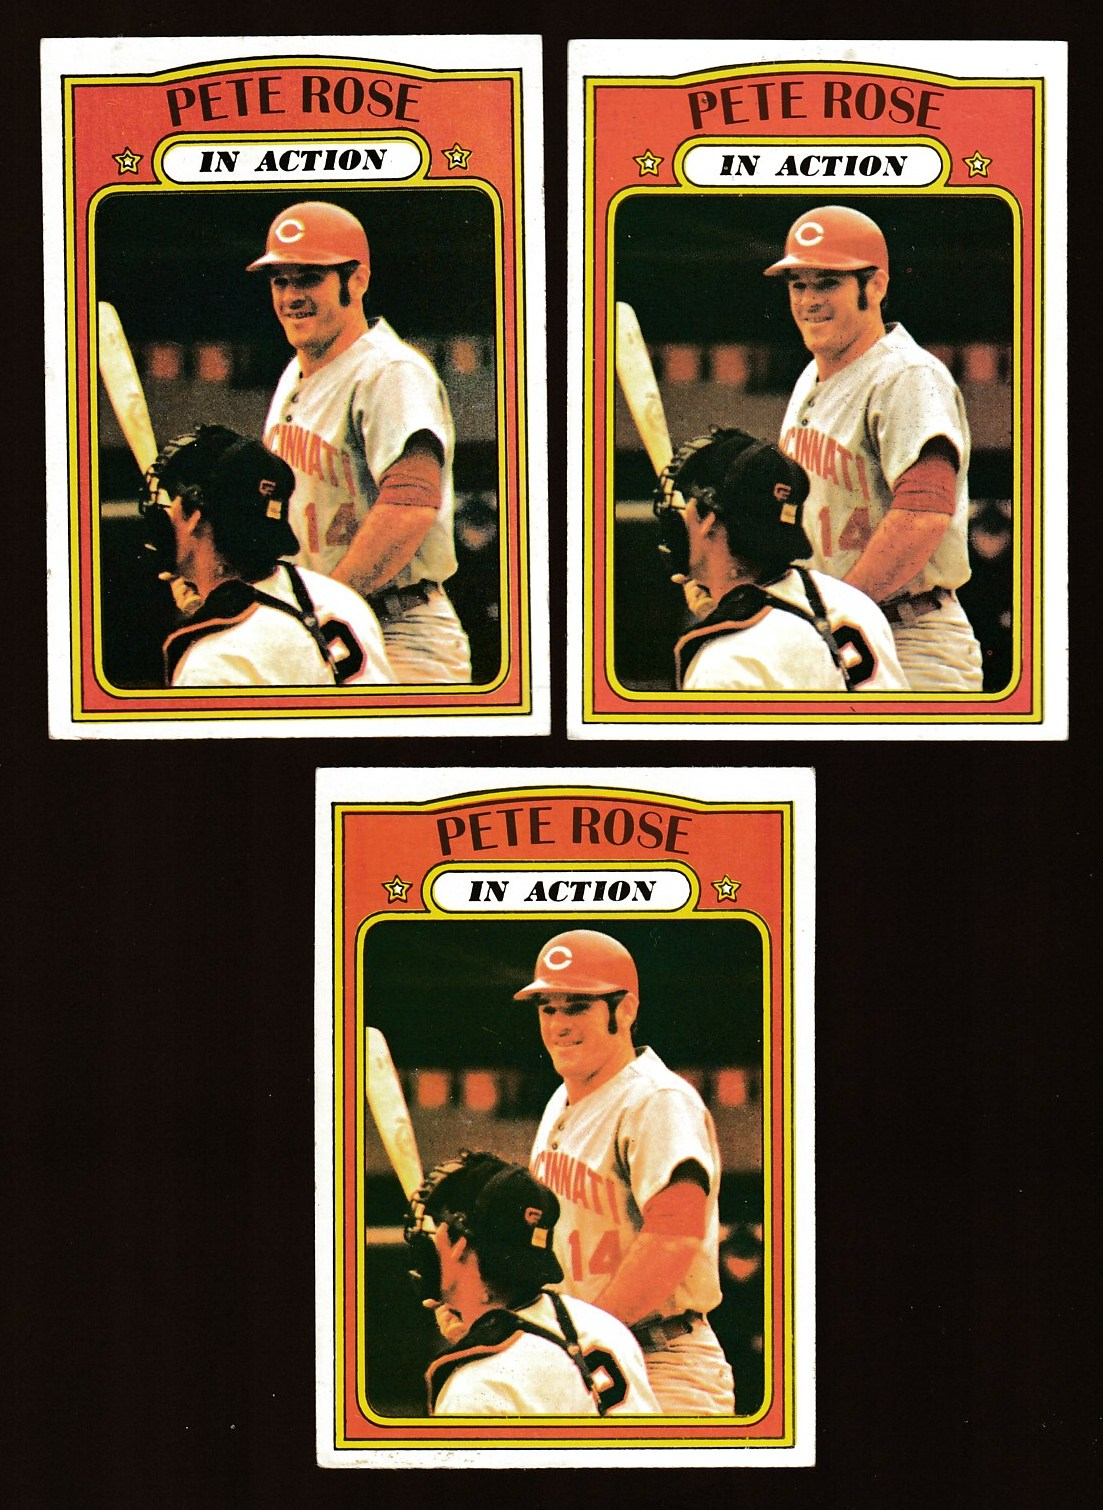 1972 Topps #560 Pete Rose In-Action (Reds) Baseball cards value